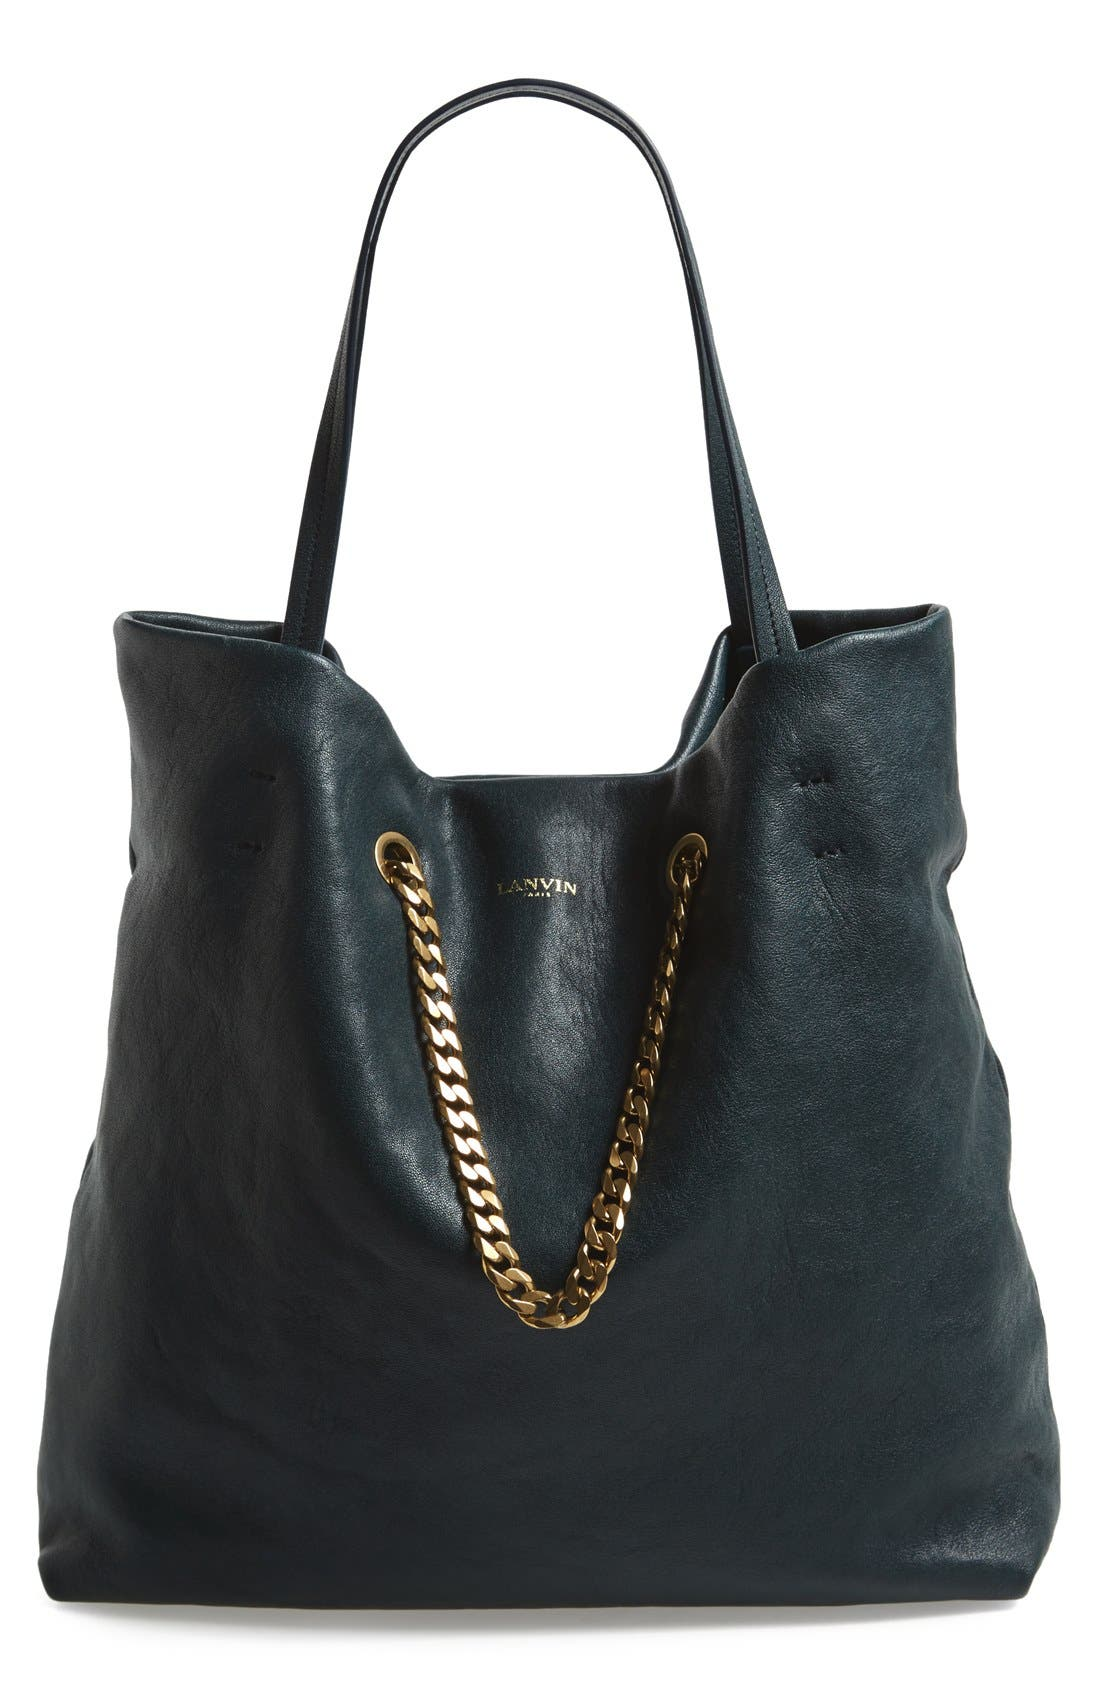 Main Image - Lanvin 'Medium Carry Me' Leather Tote